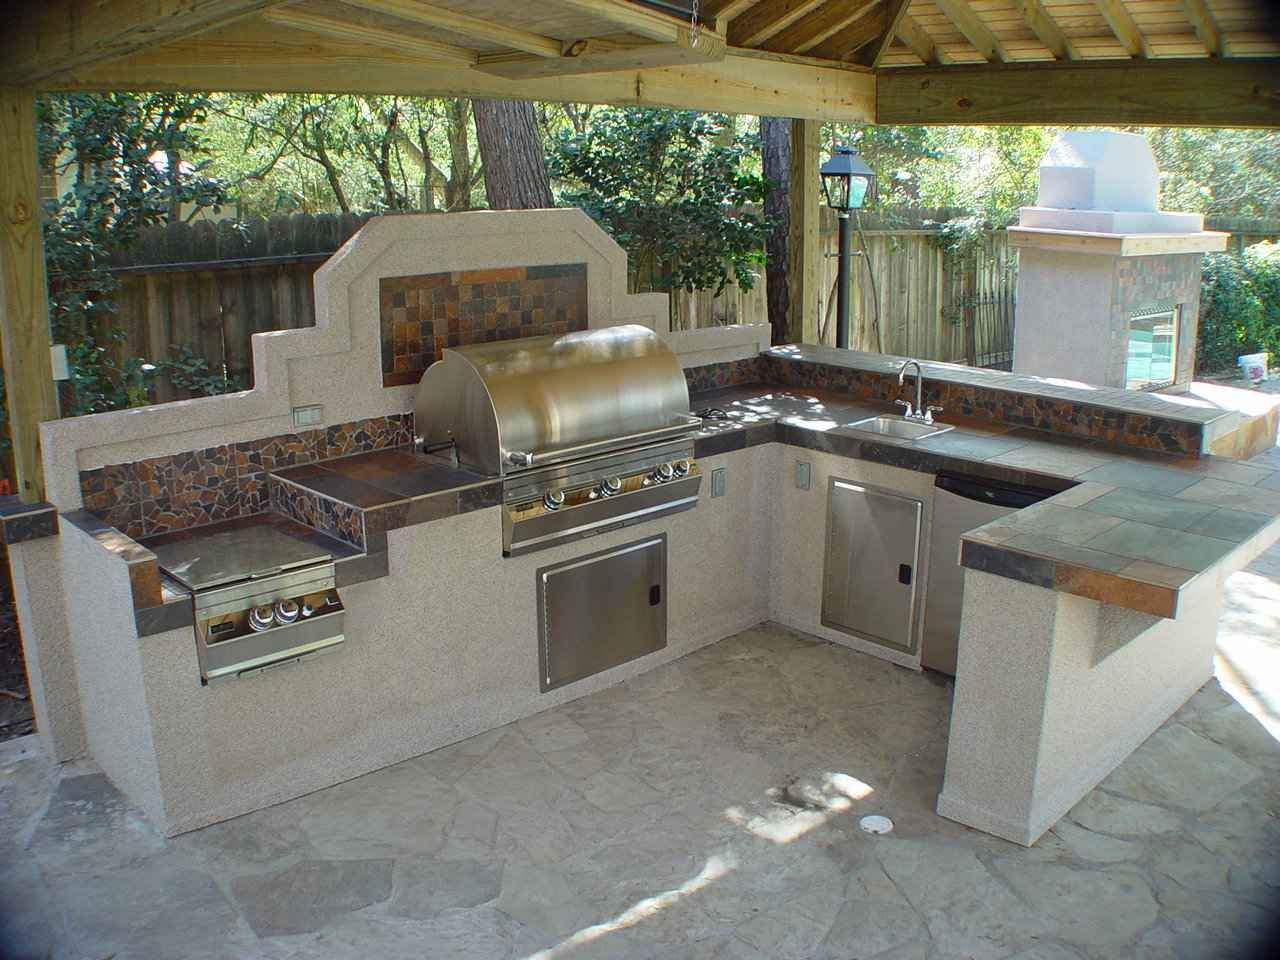 Outdoor Kitchen Designs 20 Fancy Modular Outdoor Kitchen Designs Summer Stone